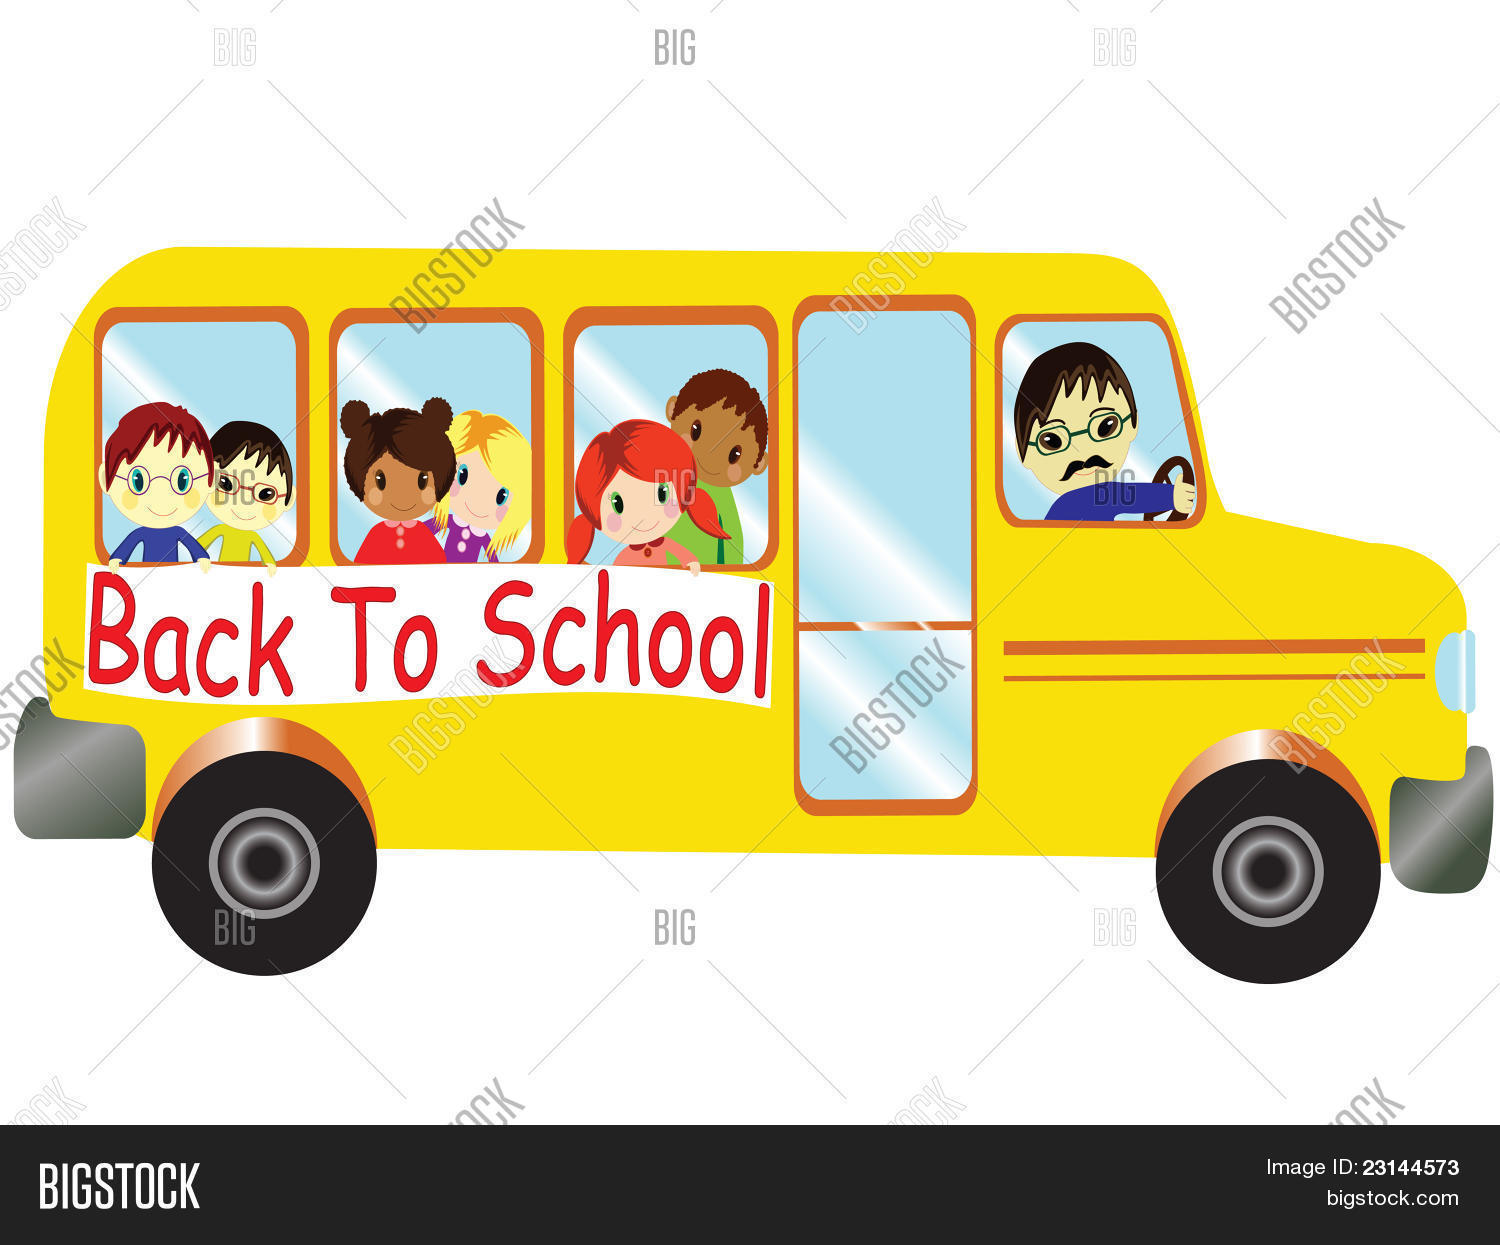 back to school bus clipart - photo #15